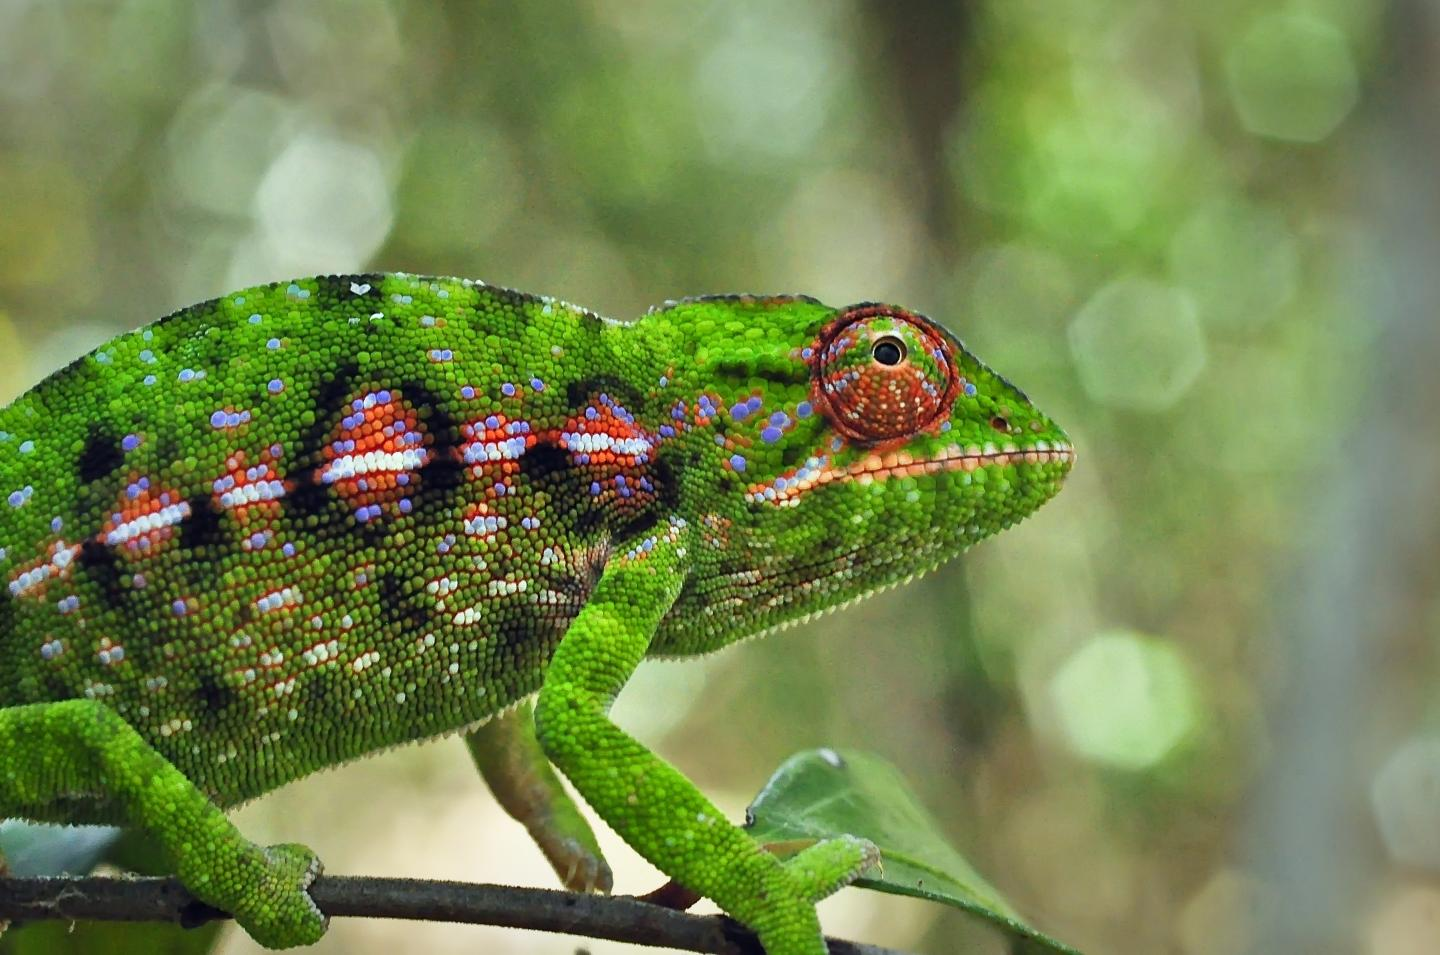 Over 90 percent of the more than 700 species of reptiles and amphibians that live in Madagascar -- like the jeweled chameleon (Furcifer campani) shown here -- occur nowhere else on Earth. A study of how Madagascar's unique biodiversity responded to environmental fluctuations in the past suggests that the climate change and deforestation that the island is experiencing today will have varying effects on different species. Credit: Jason L. Brown, City College of New York